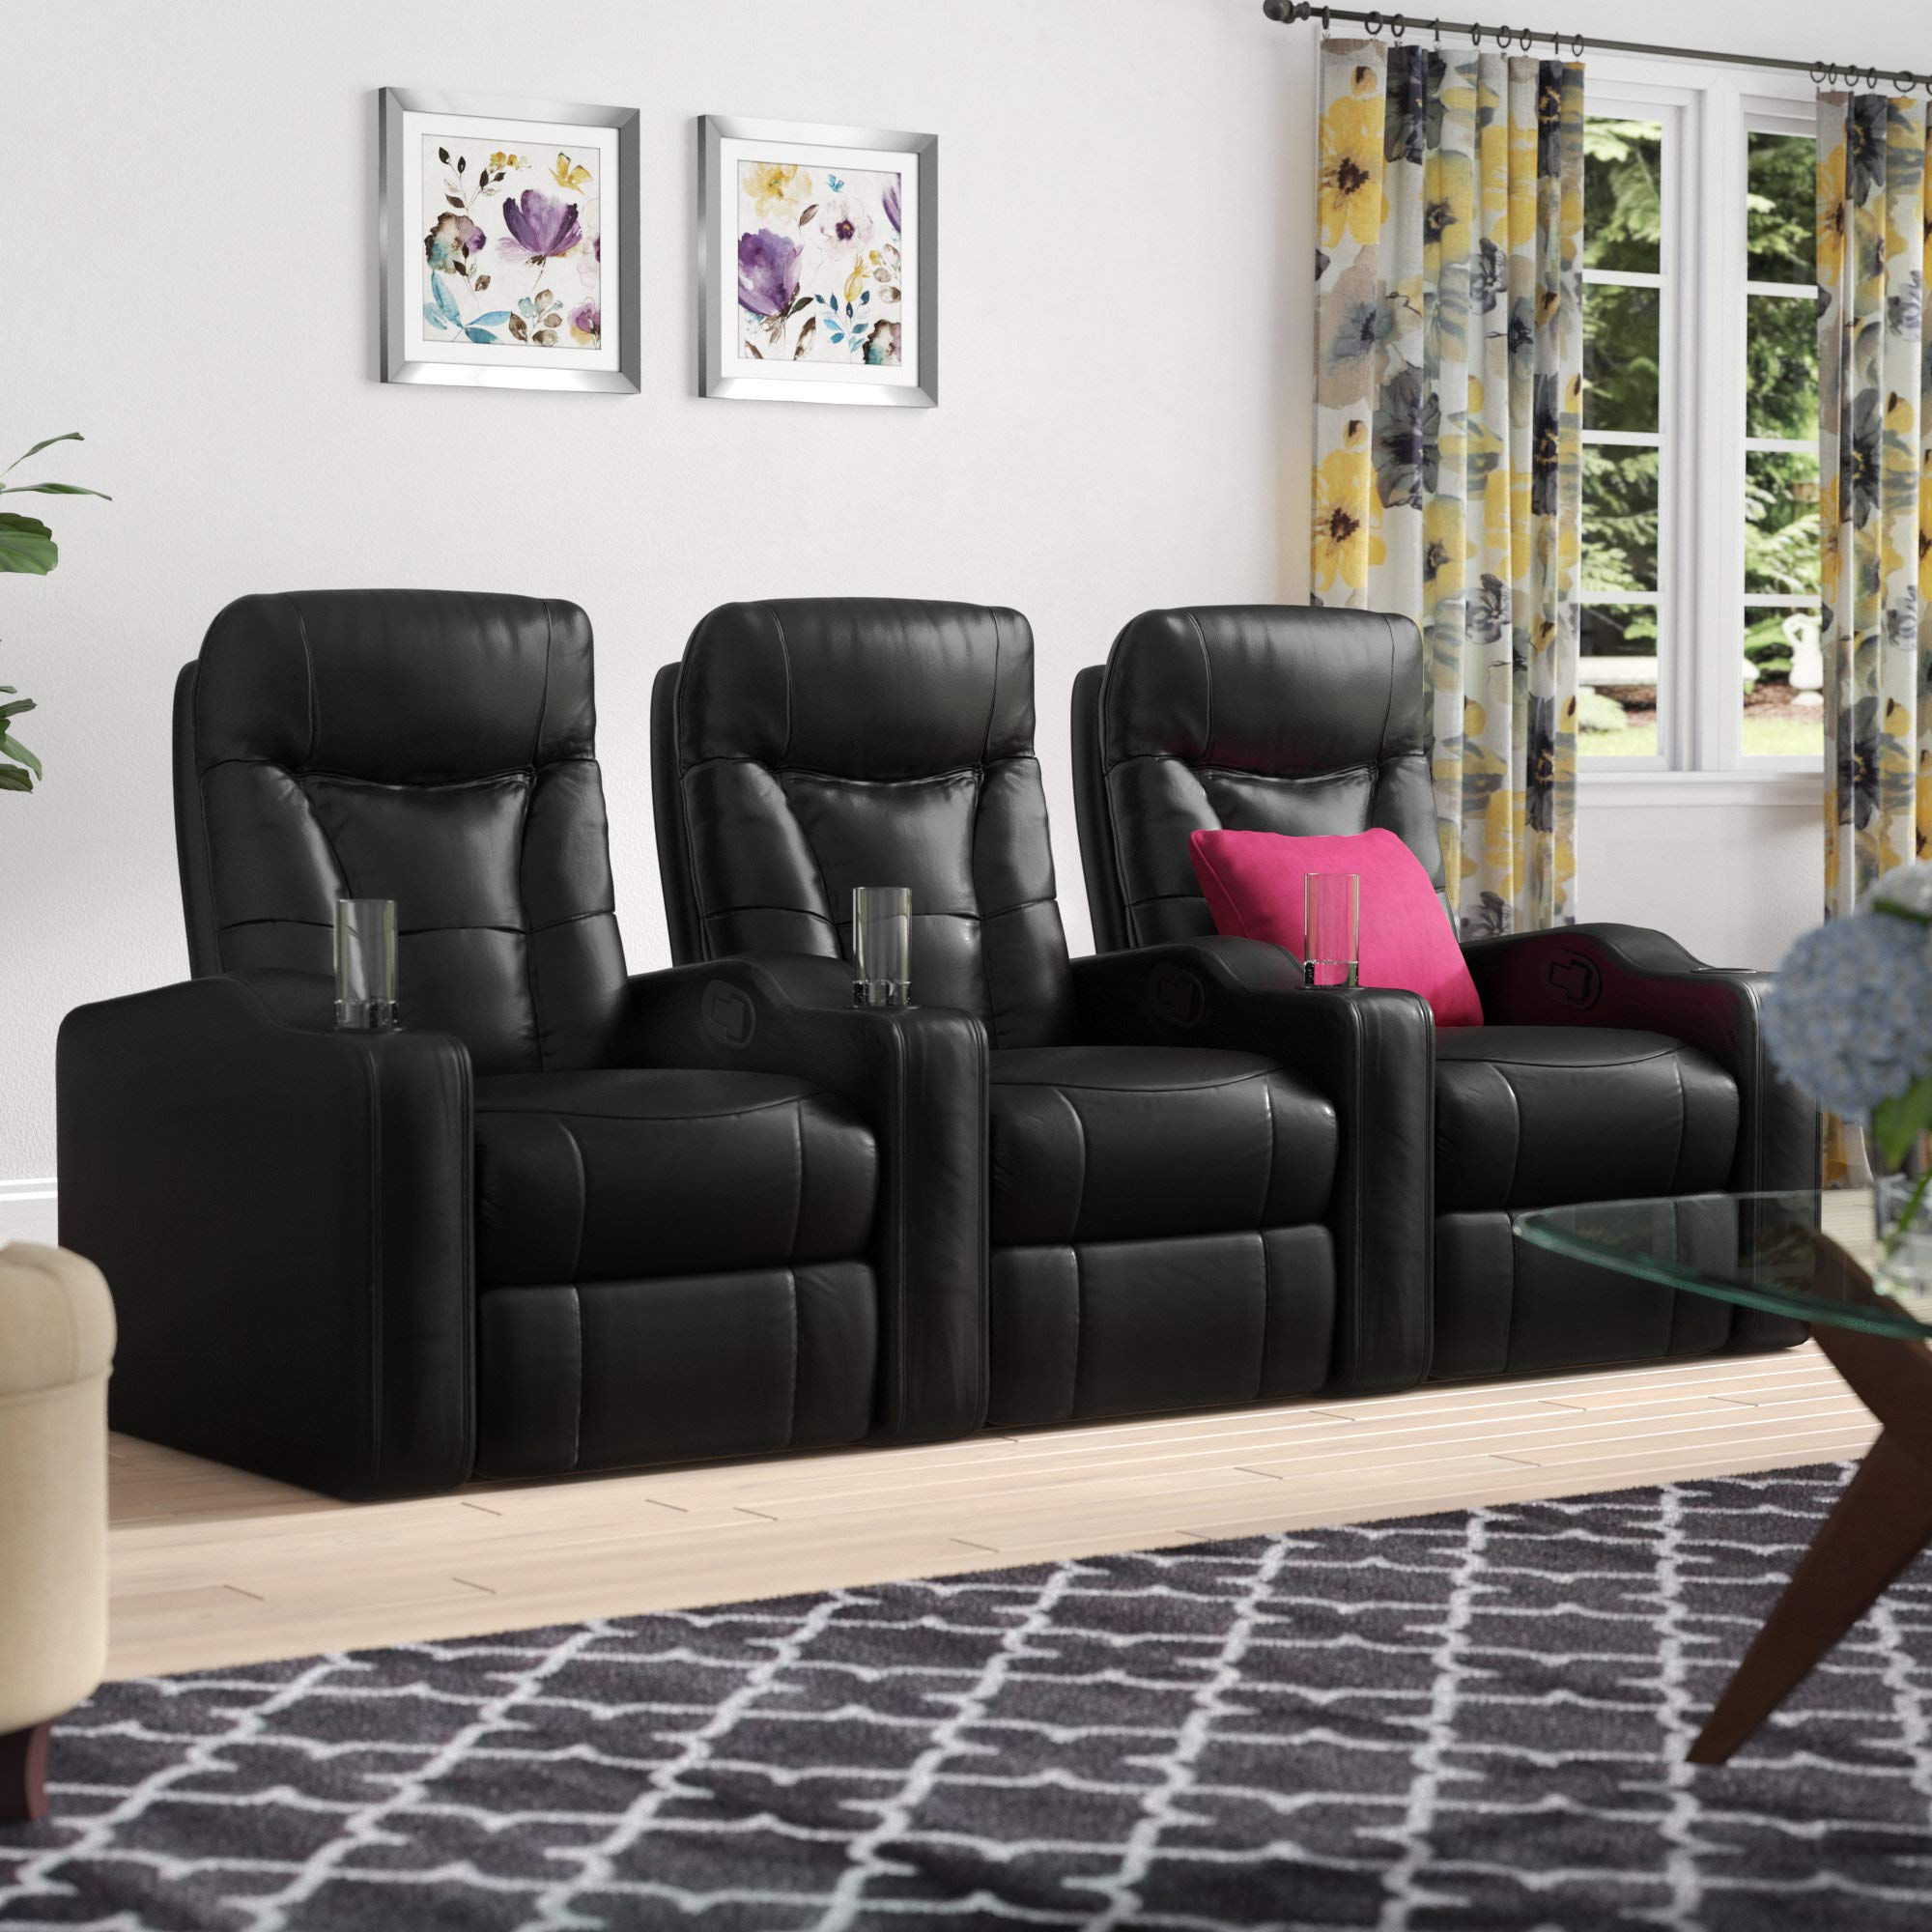 3 Seats Recliner Chair W/Built-in Cup Holders Console, Black Modular Sectional Home Theater Seating by OuchTek